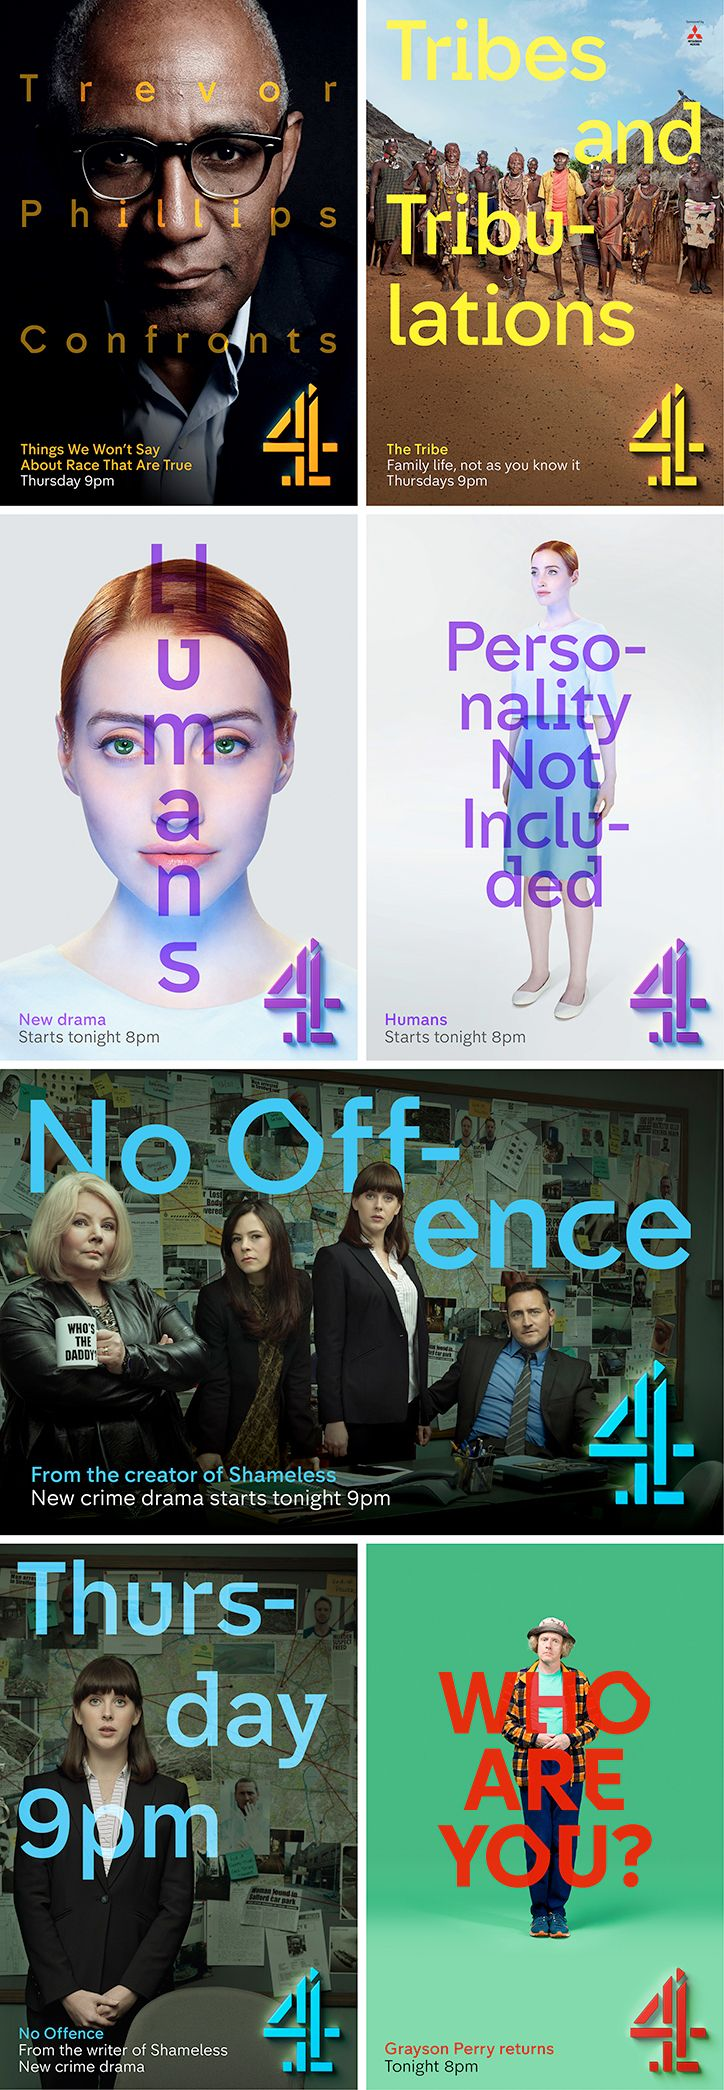 Channel 4: New identity, 4Creative, Jonathan Glazer, Neville Brody and DBLG.